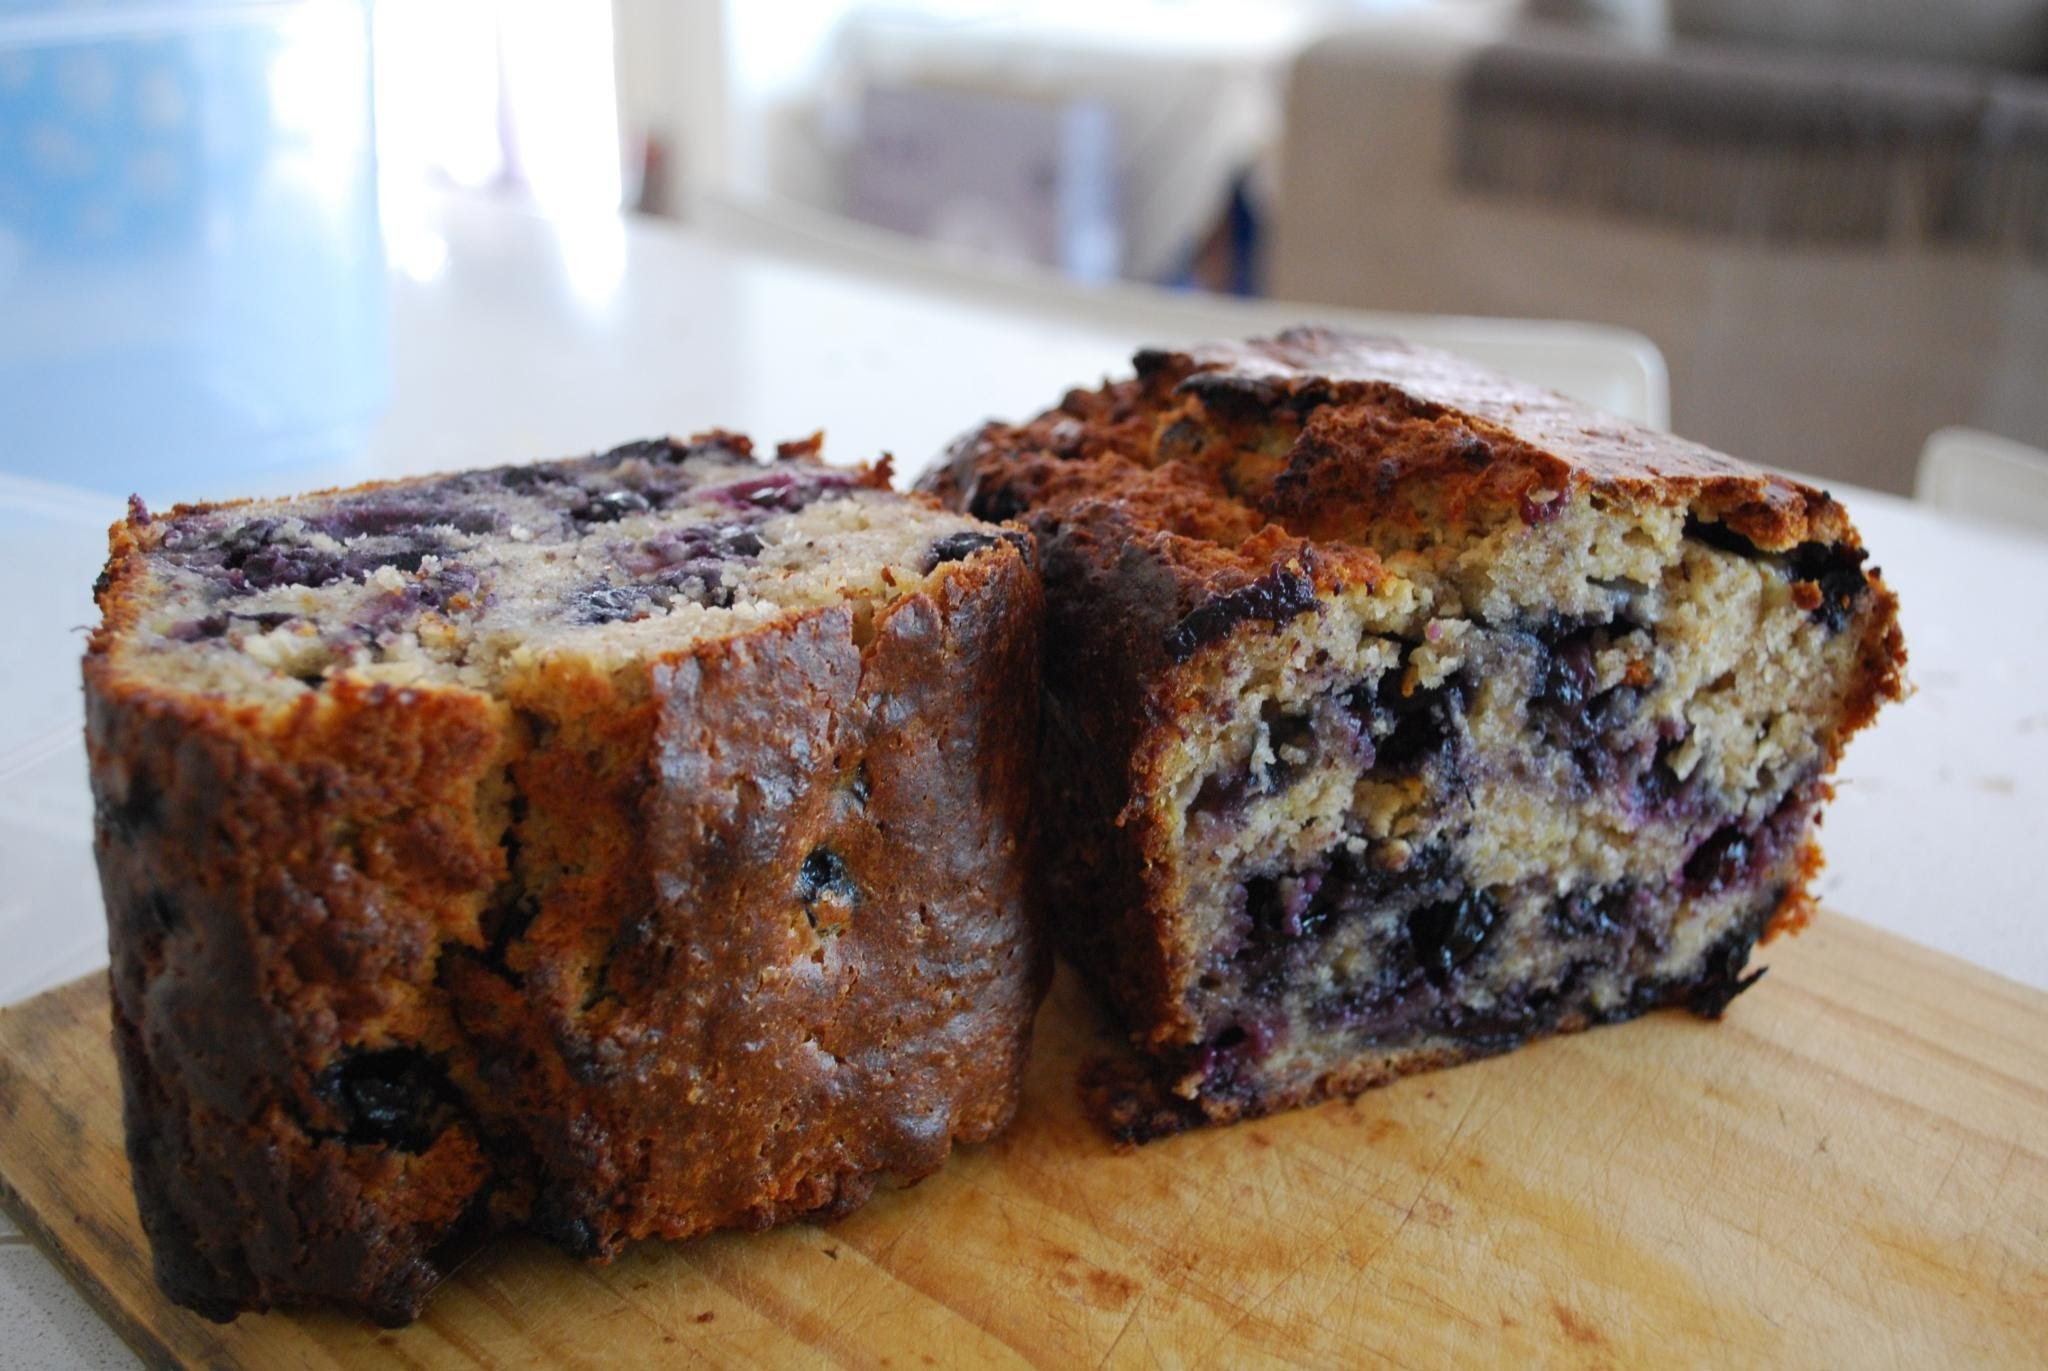 How to Make Blueberry Bread Old Vintage Recipe